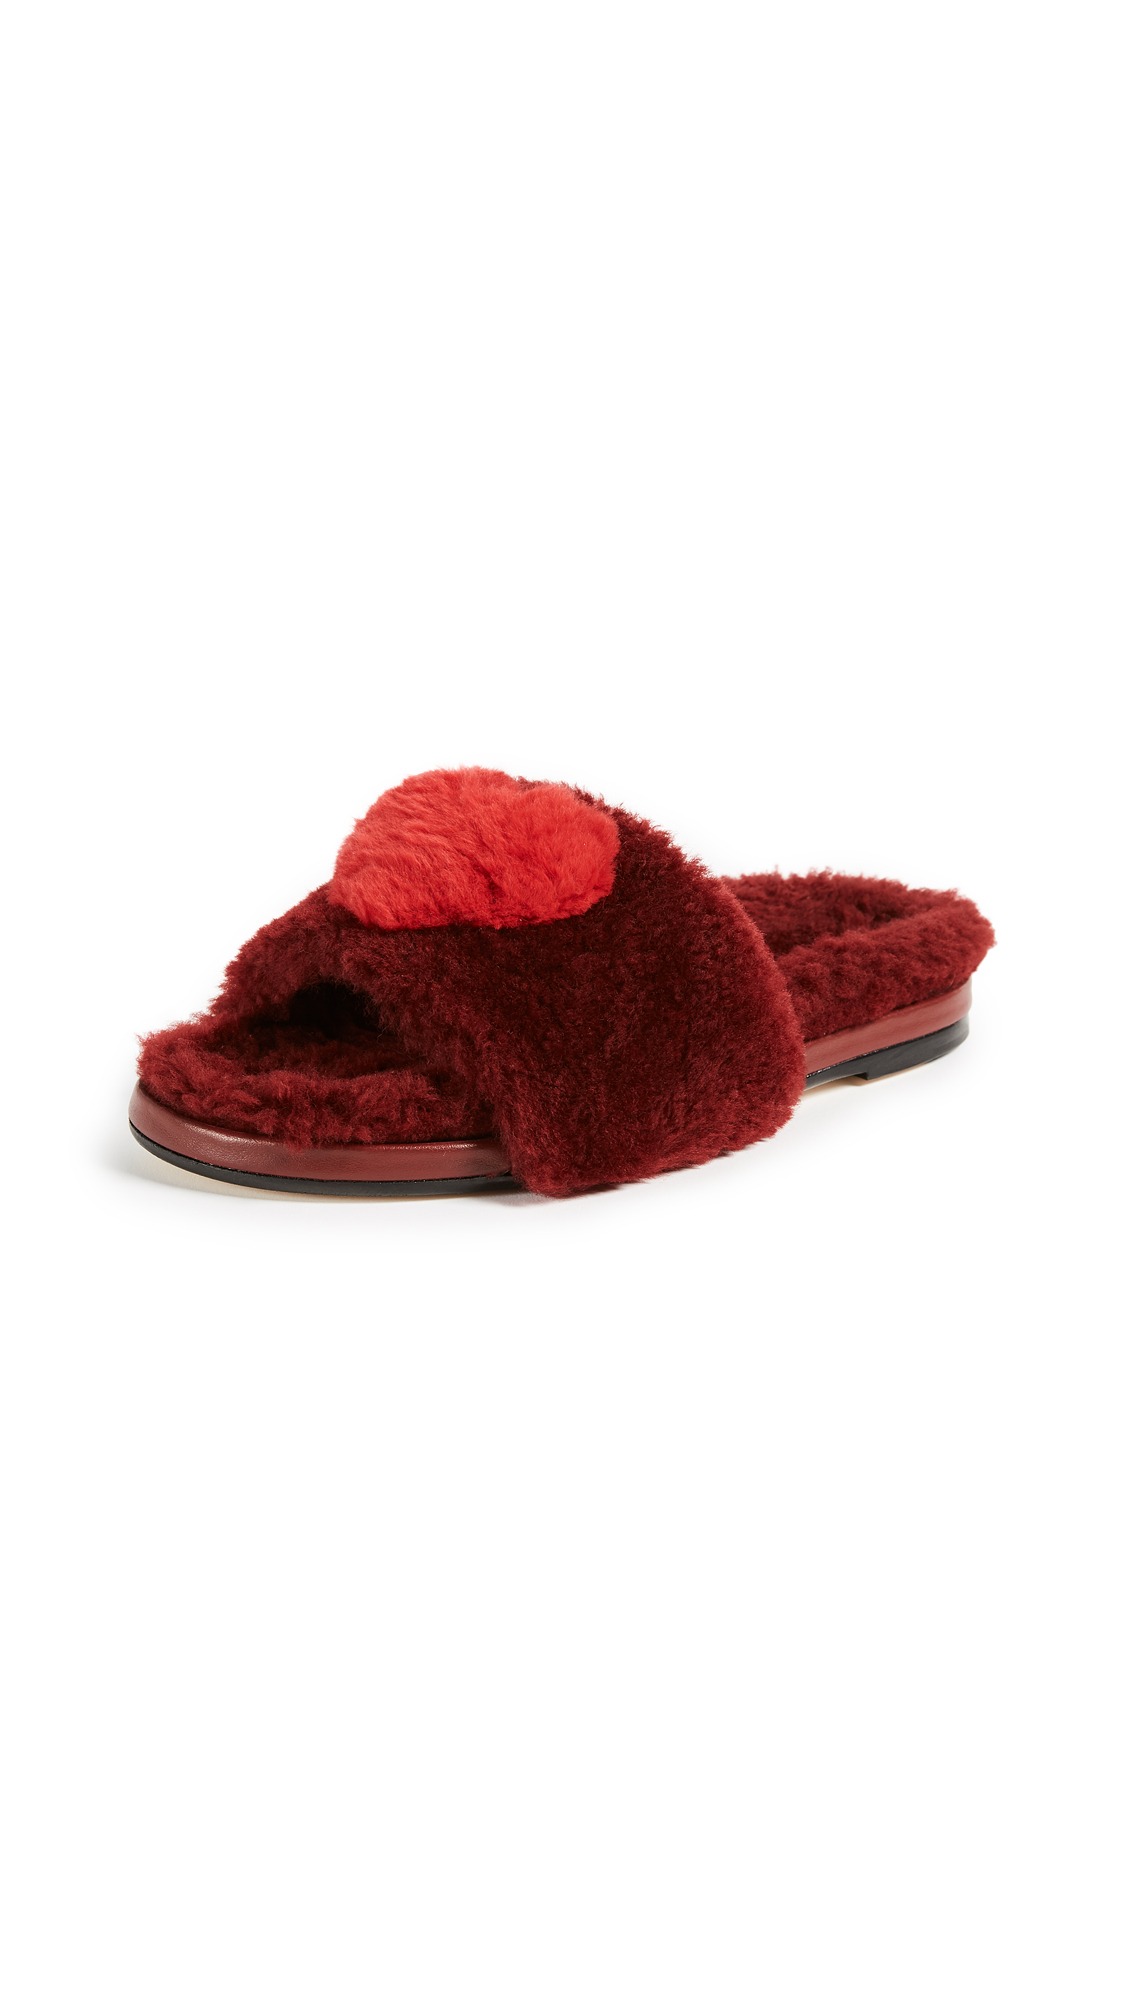 Anya Hindmarch Heart Slides - Red